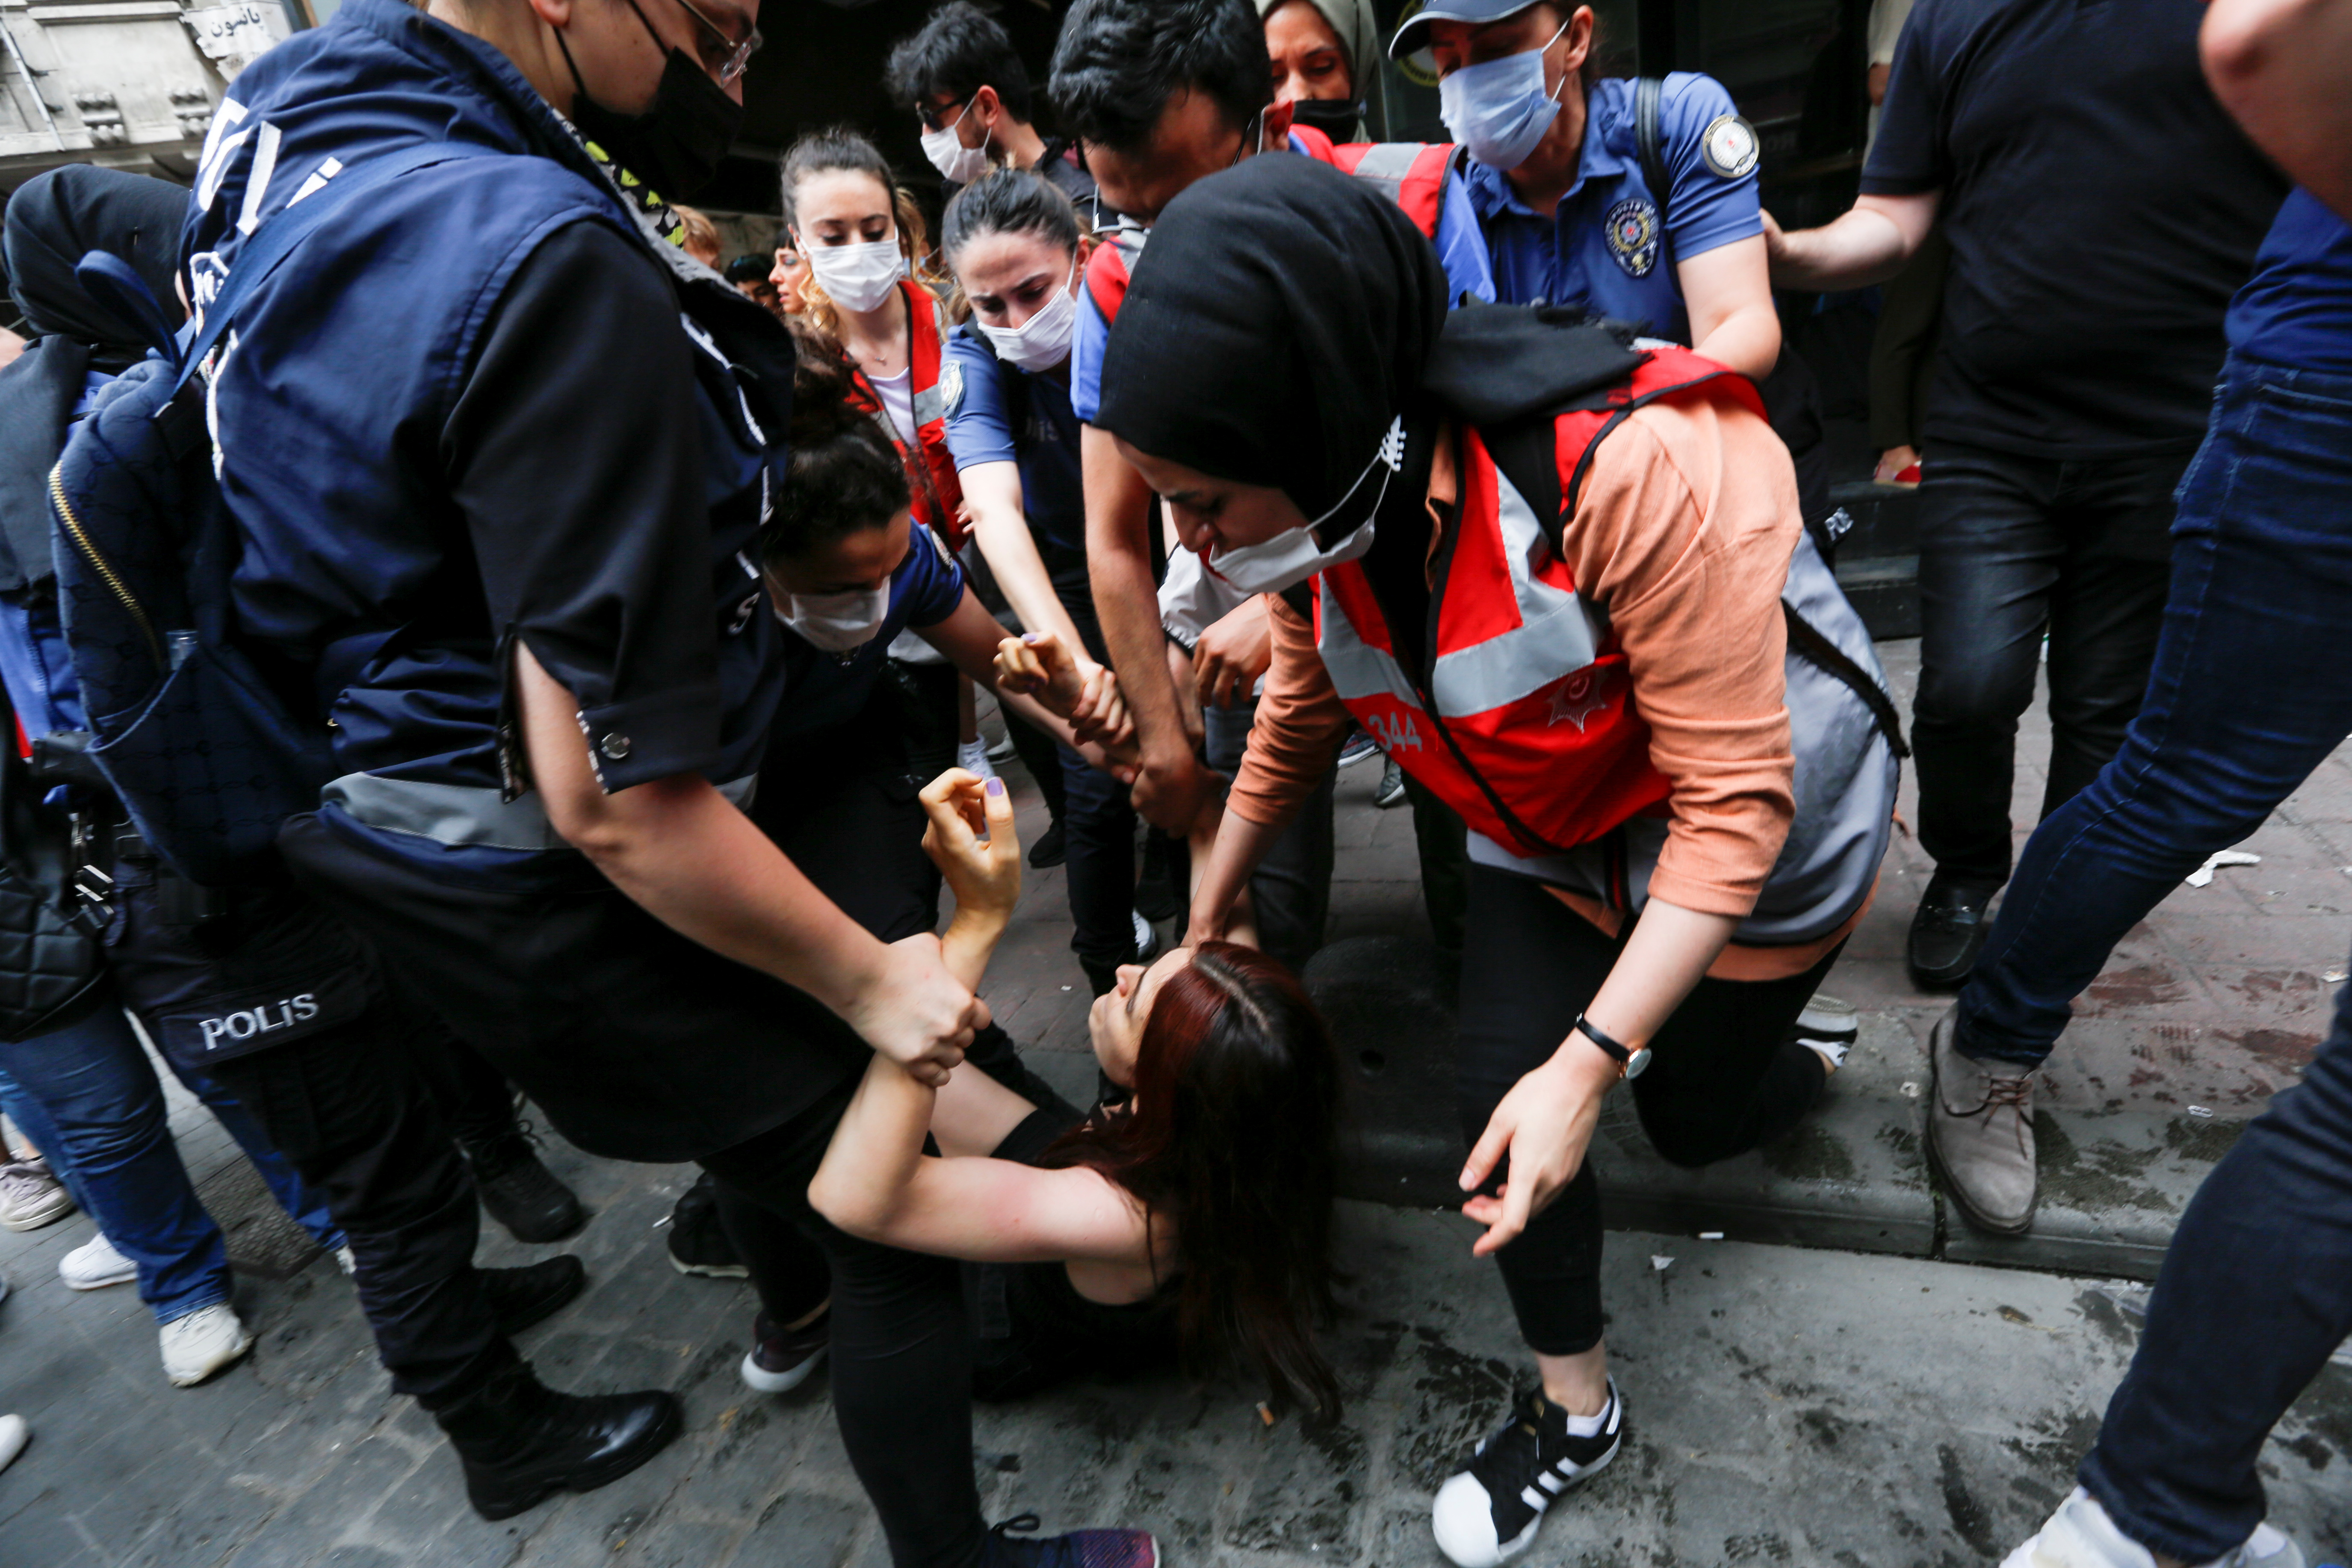 Riot police detain a demonstrator as LGBT rights activists try to gather for a Pride parade, which was banned by local authorities, in central in Istanbul, Turkey June 26, 2021. REUTERS/Dilara Senkaya